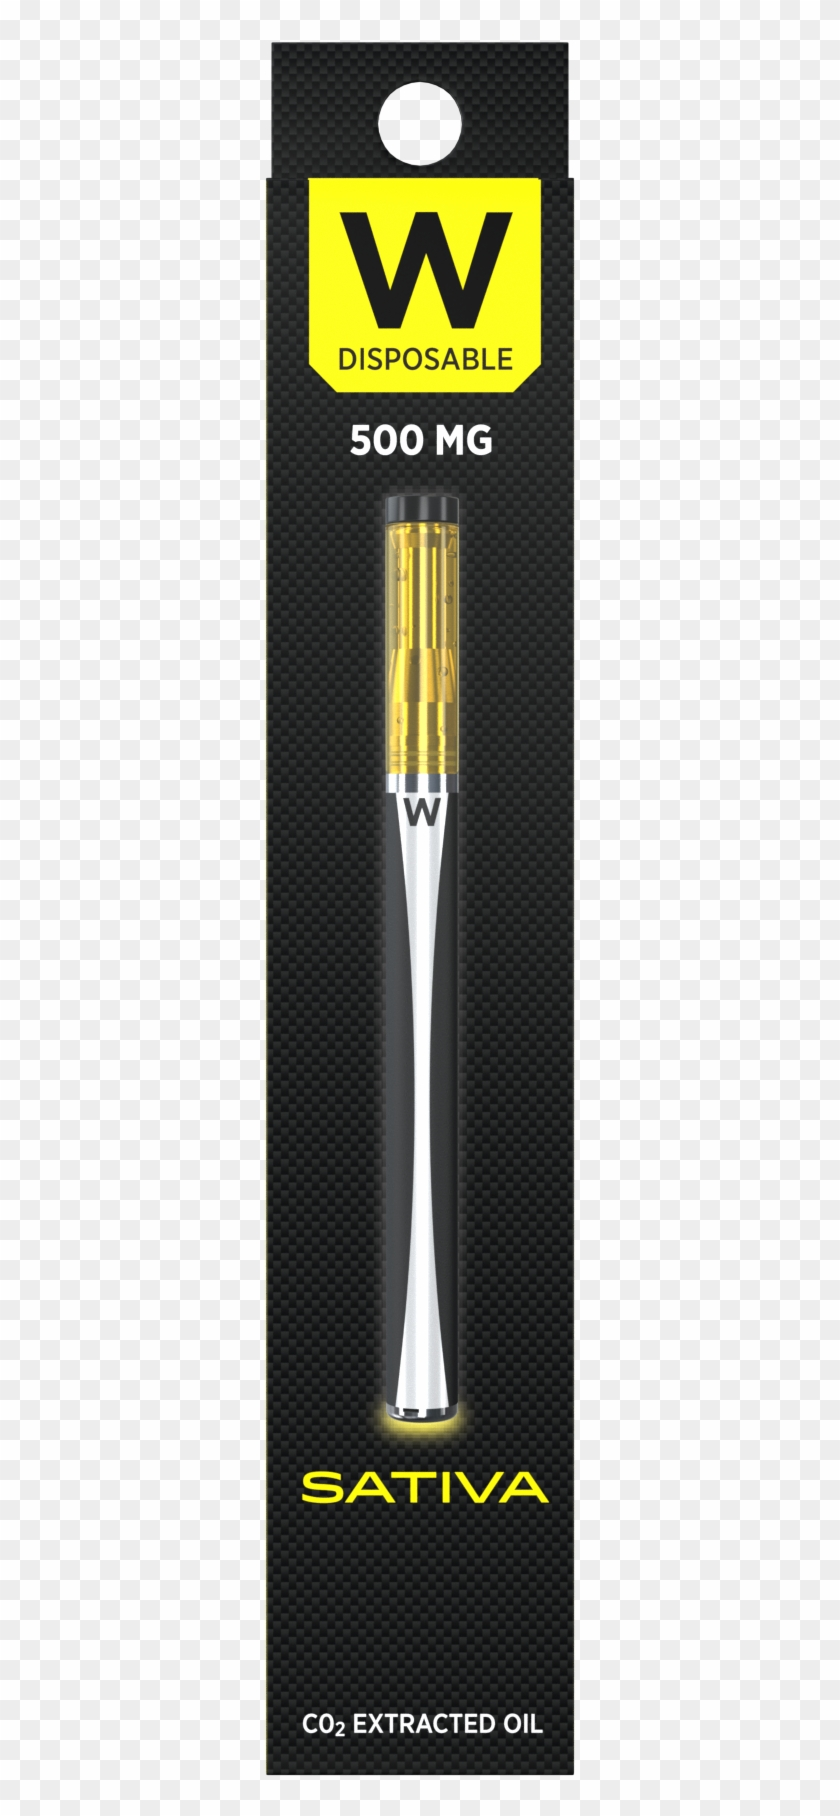 Durban Poison Sativa 500mg Vape Pen By W Vapes - Paper Product Clipart #1544504